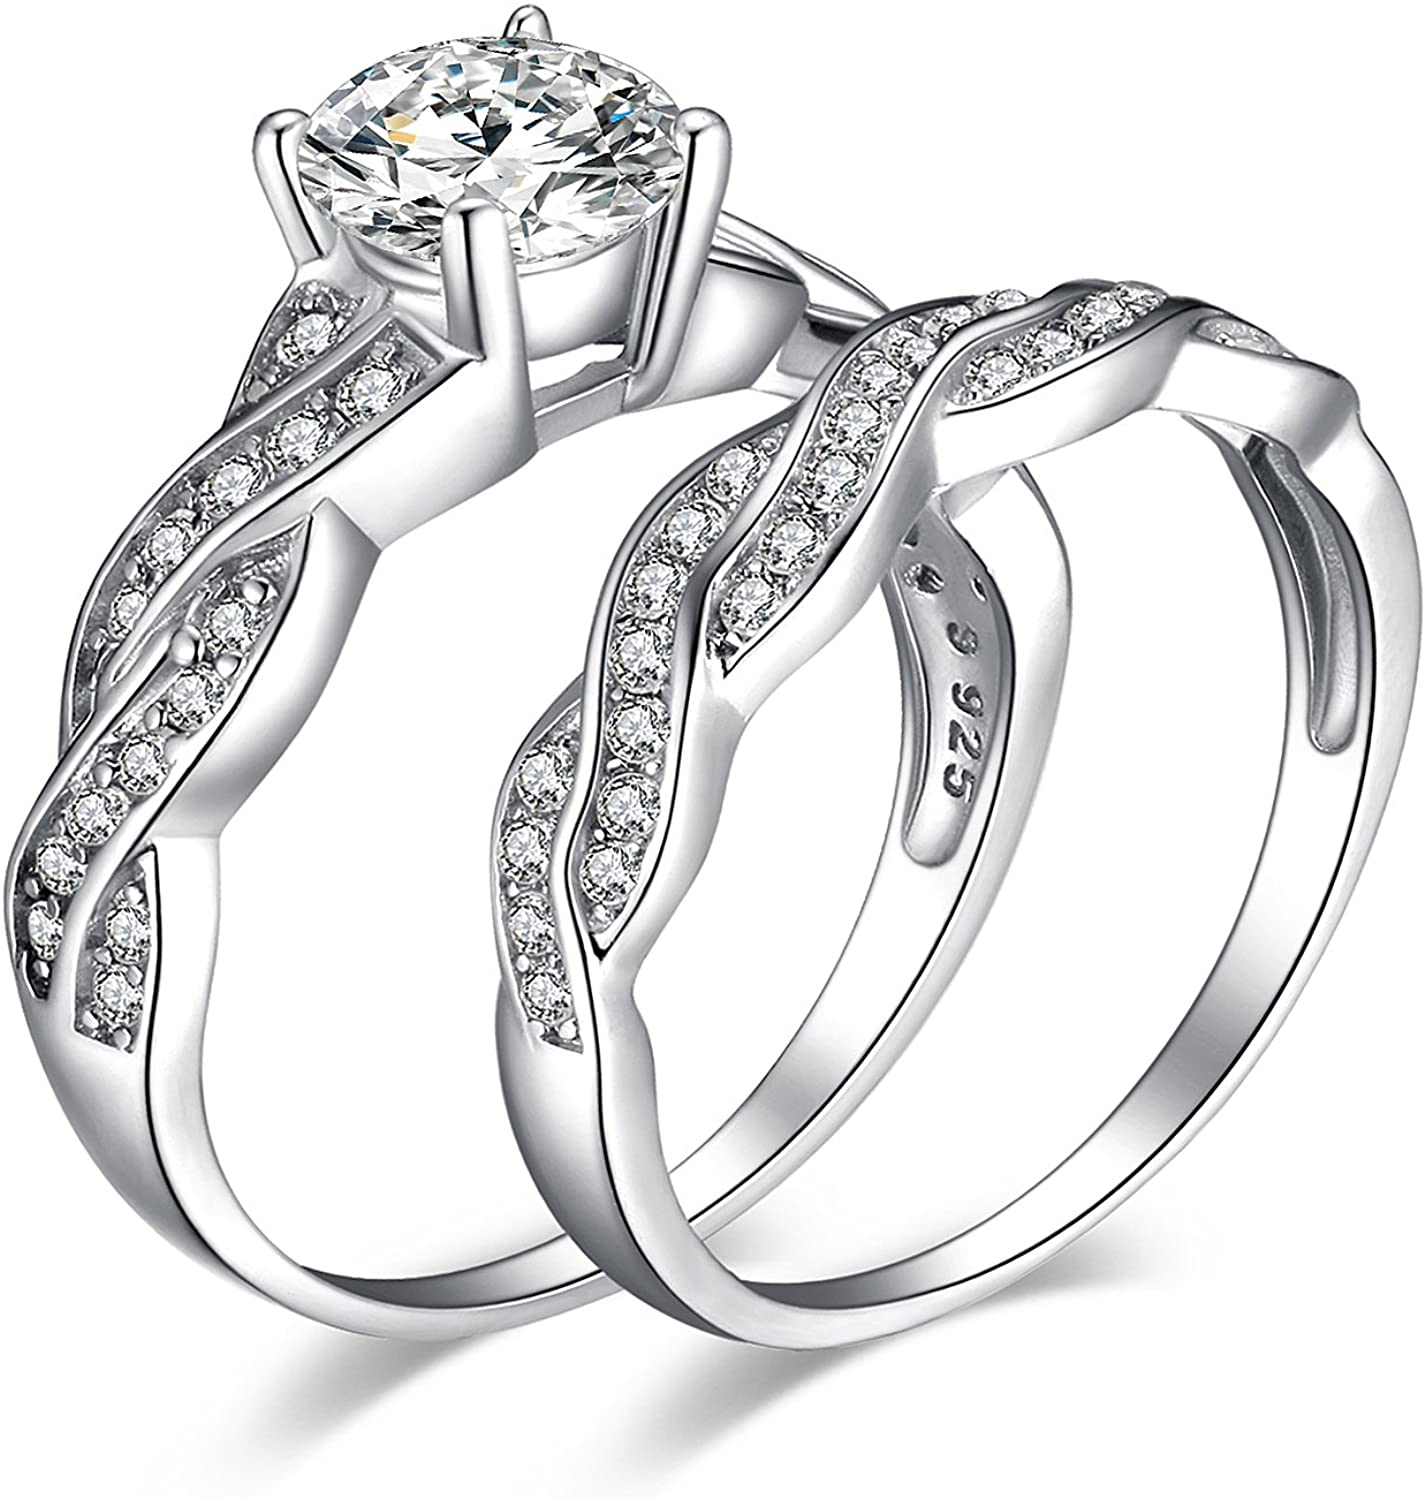 Jewelrypalace Wedding Rings Engagement Rings For Women Anniversary